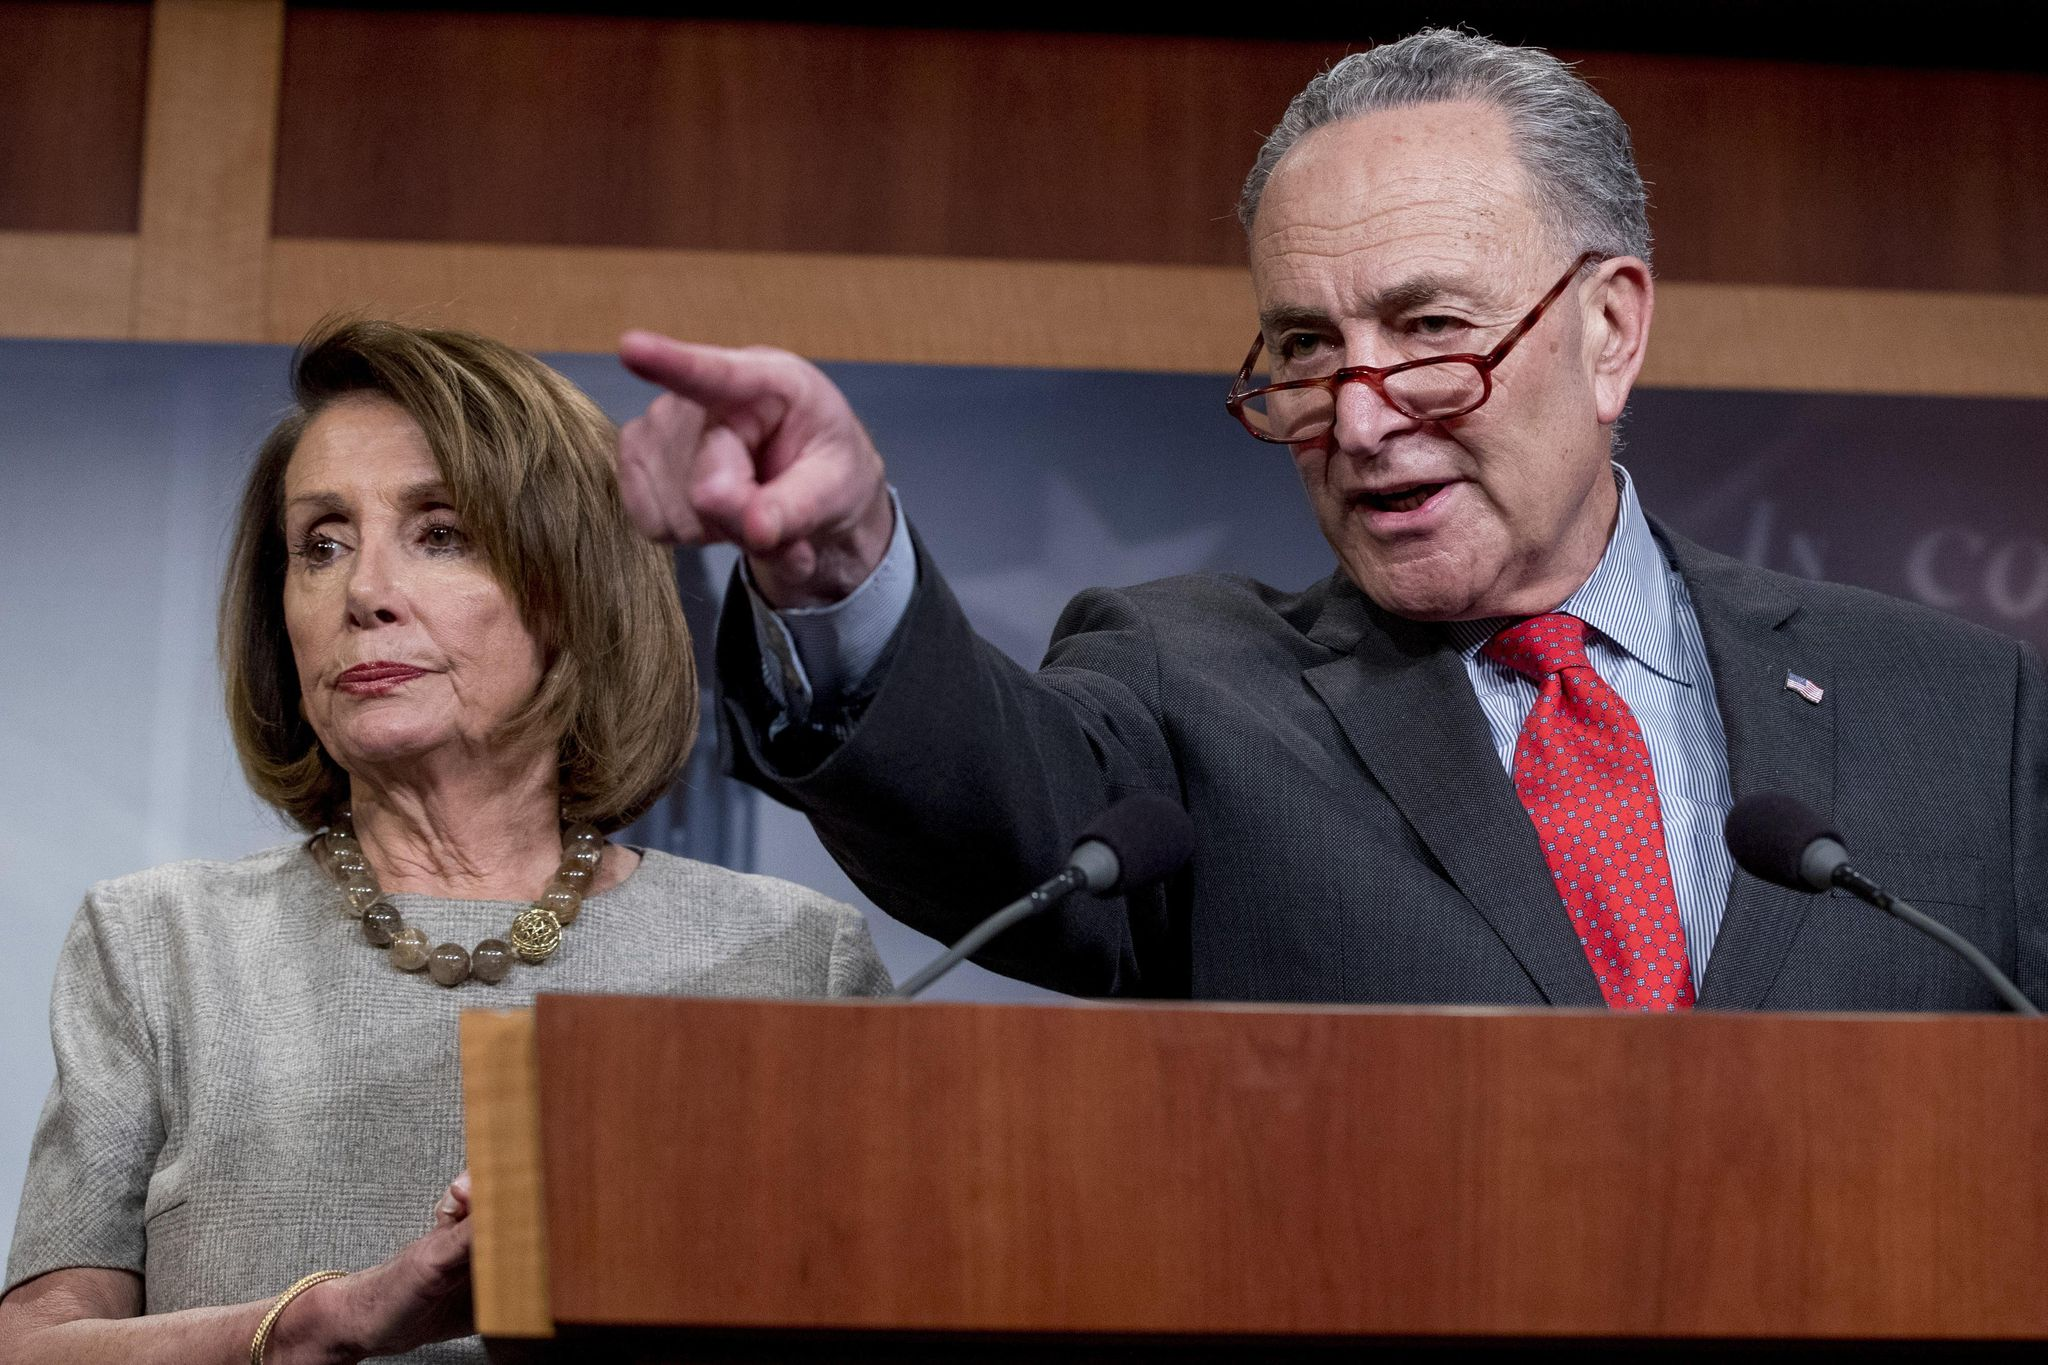 Together again? Trump, Pelosi, Schumer tackle infrastructure